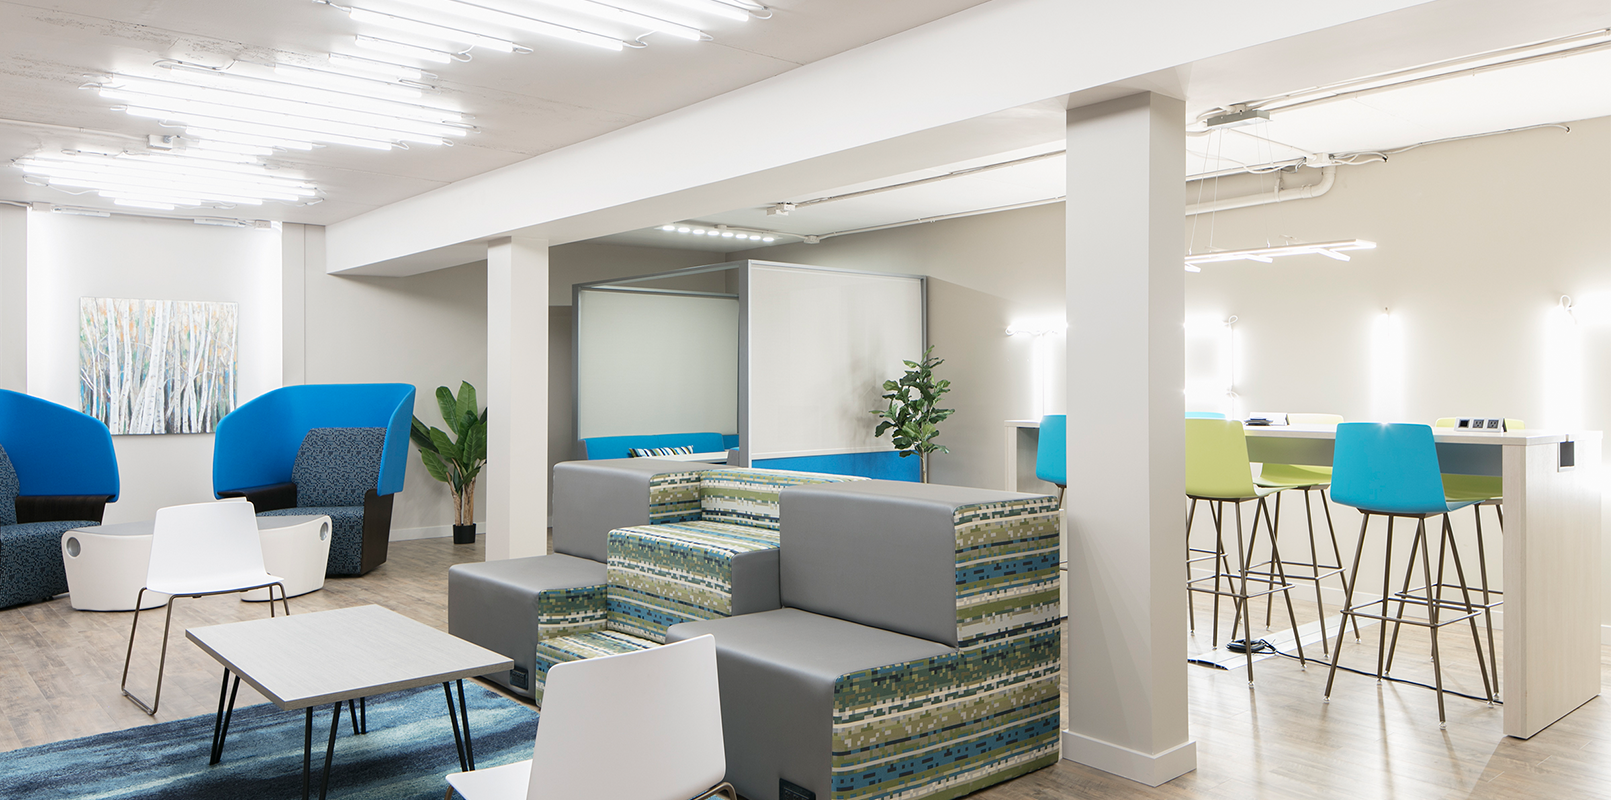 Wide view of lounge and meeting space with accent chairs and neon lighting